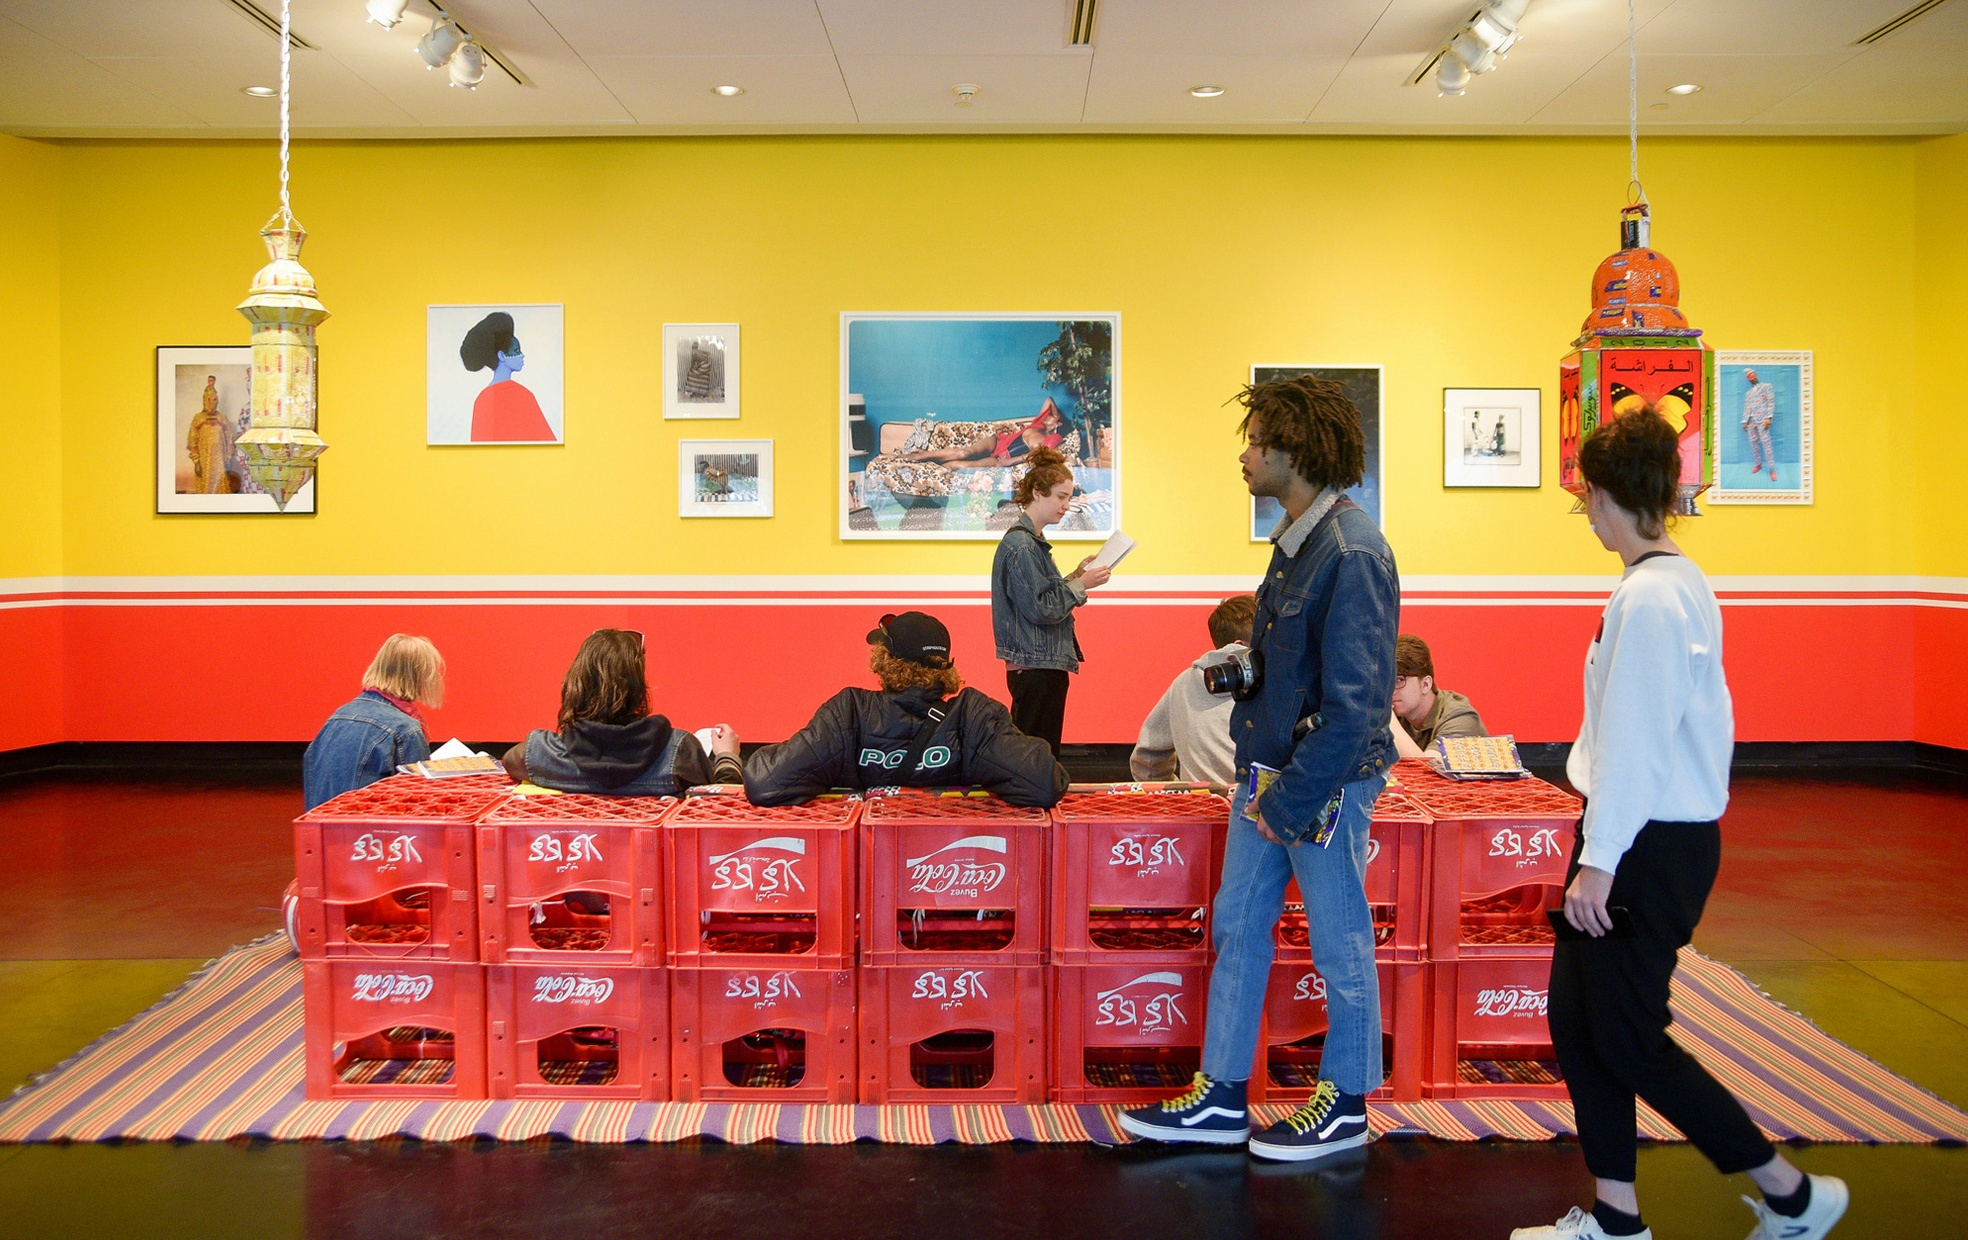 Two people walk past a group of people sitting in a couch made of Coca Cola crates looking at a yellow wall with artwork hung on it.